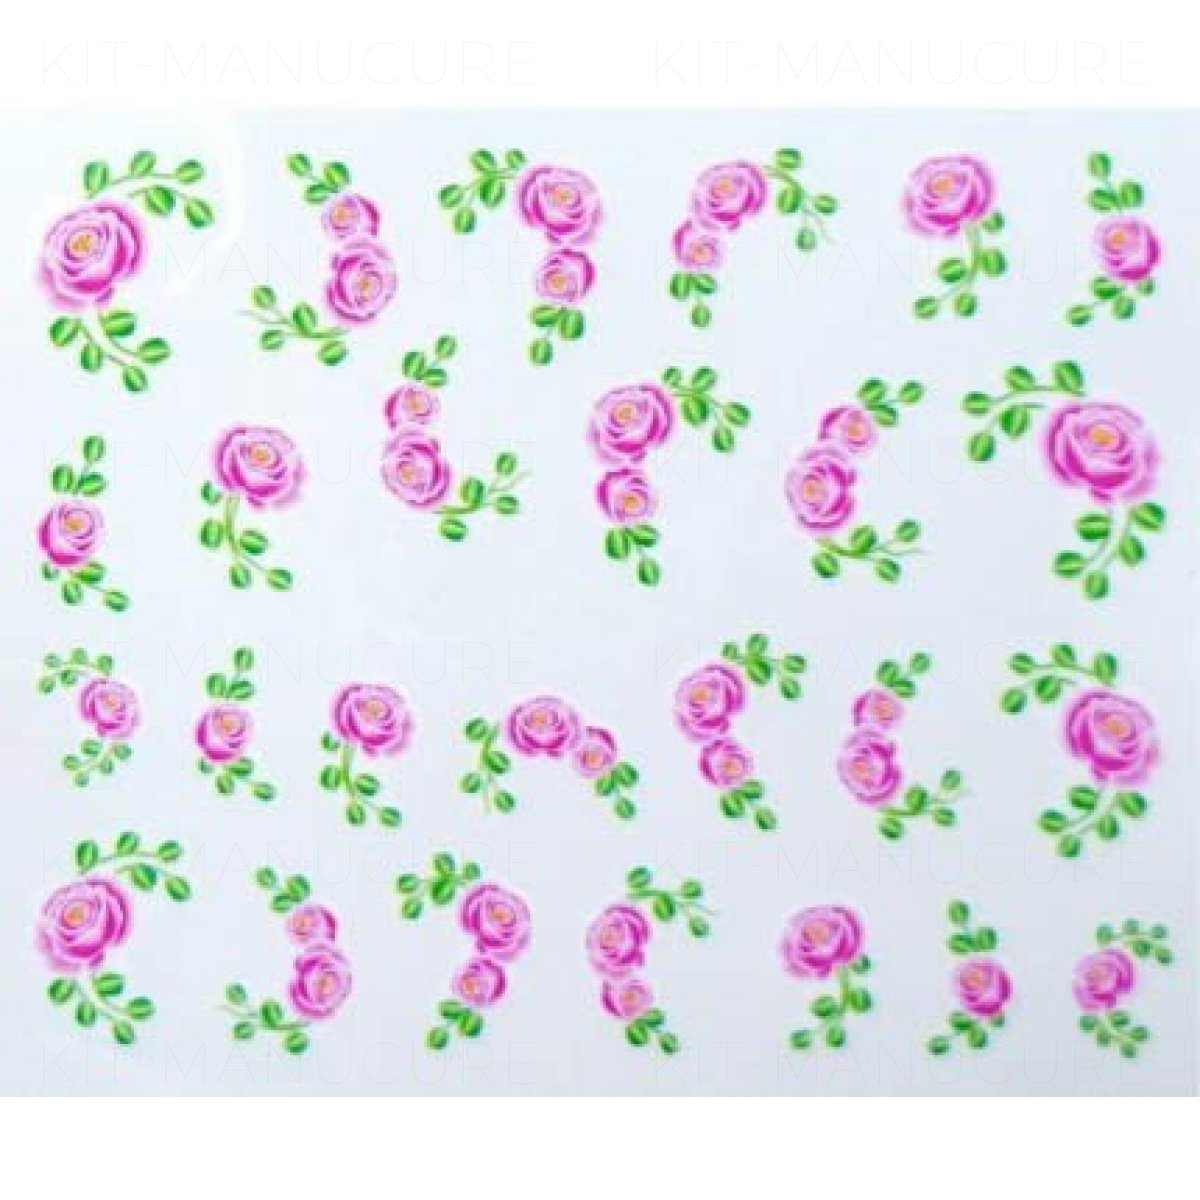 https://www.kit-manucure.com/429-thickbox_default/water-decals-roses-et-feuilles-rose-et-vert.jpg